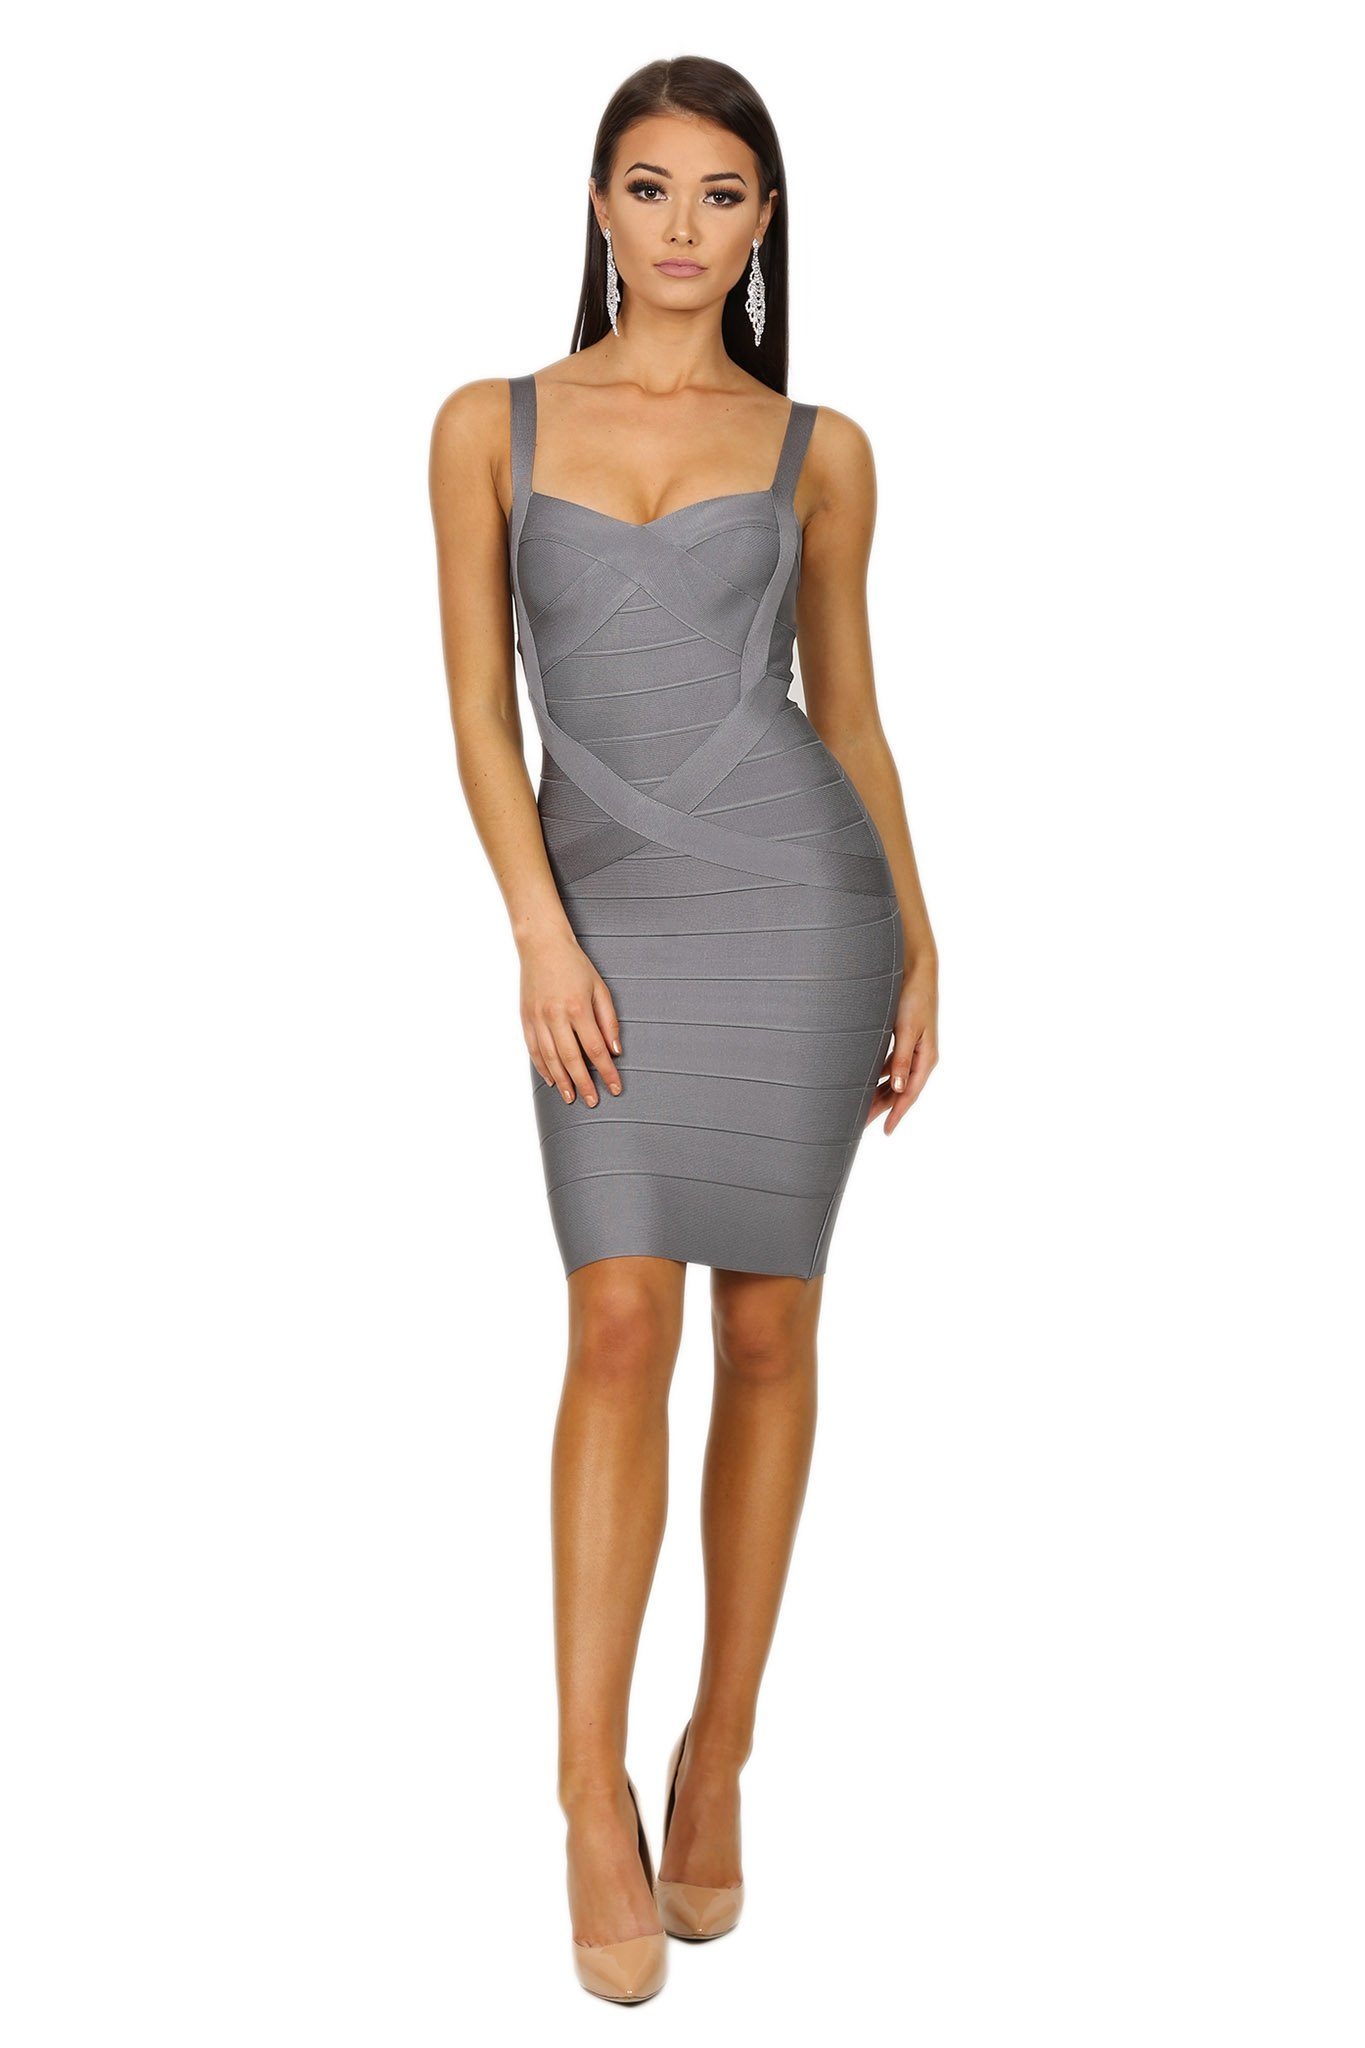 Mini bandage dress subtle sweetheart neckline shoulder straps in grey color